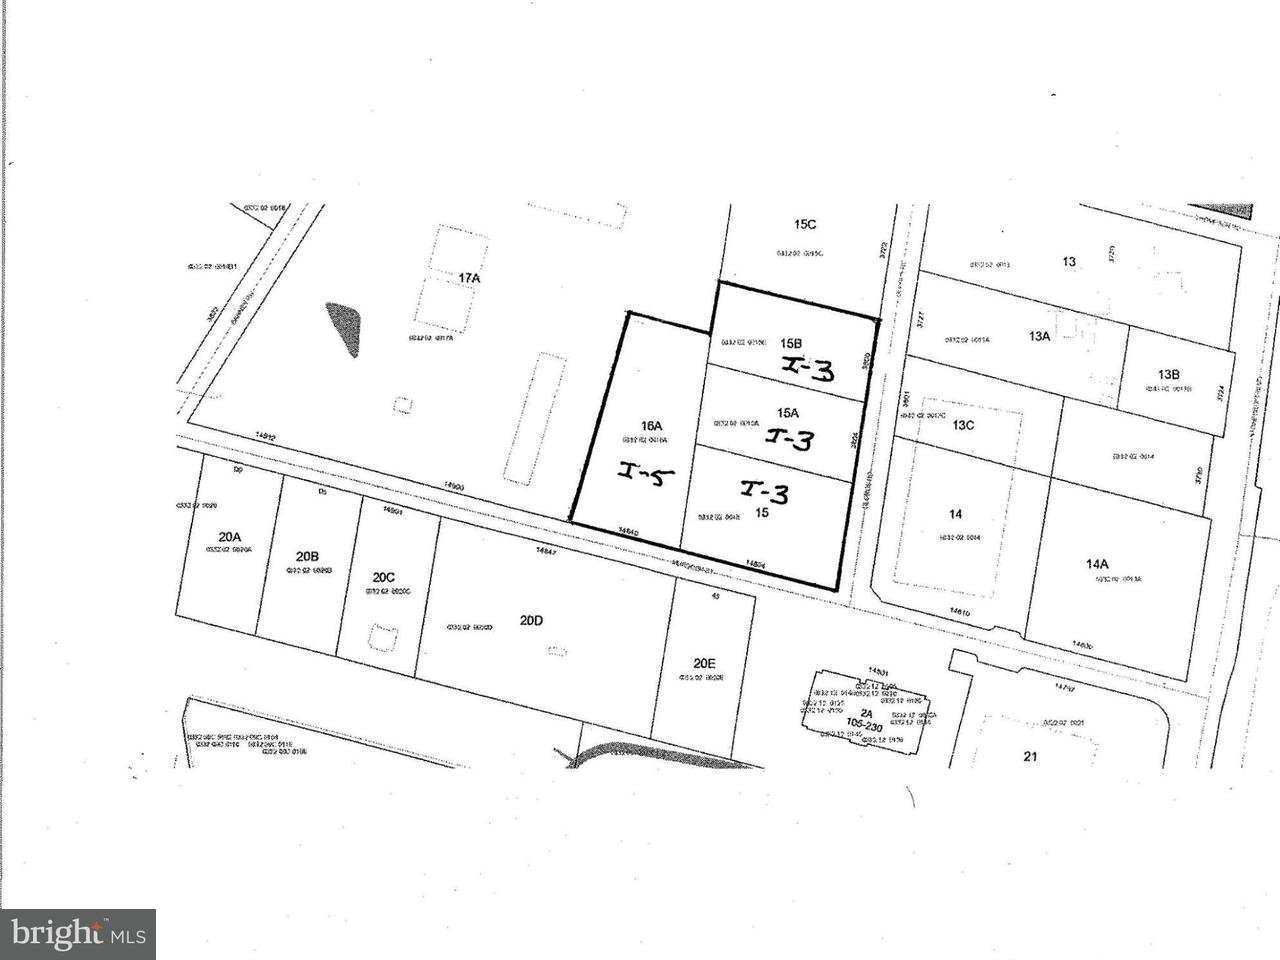 Land for Sale at 14840 MURDOCK Street 14840 MURDOCK Street Chantilly, Virginia 20151 United States